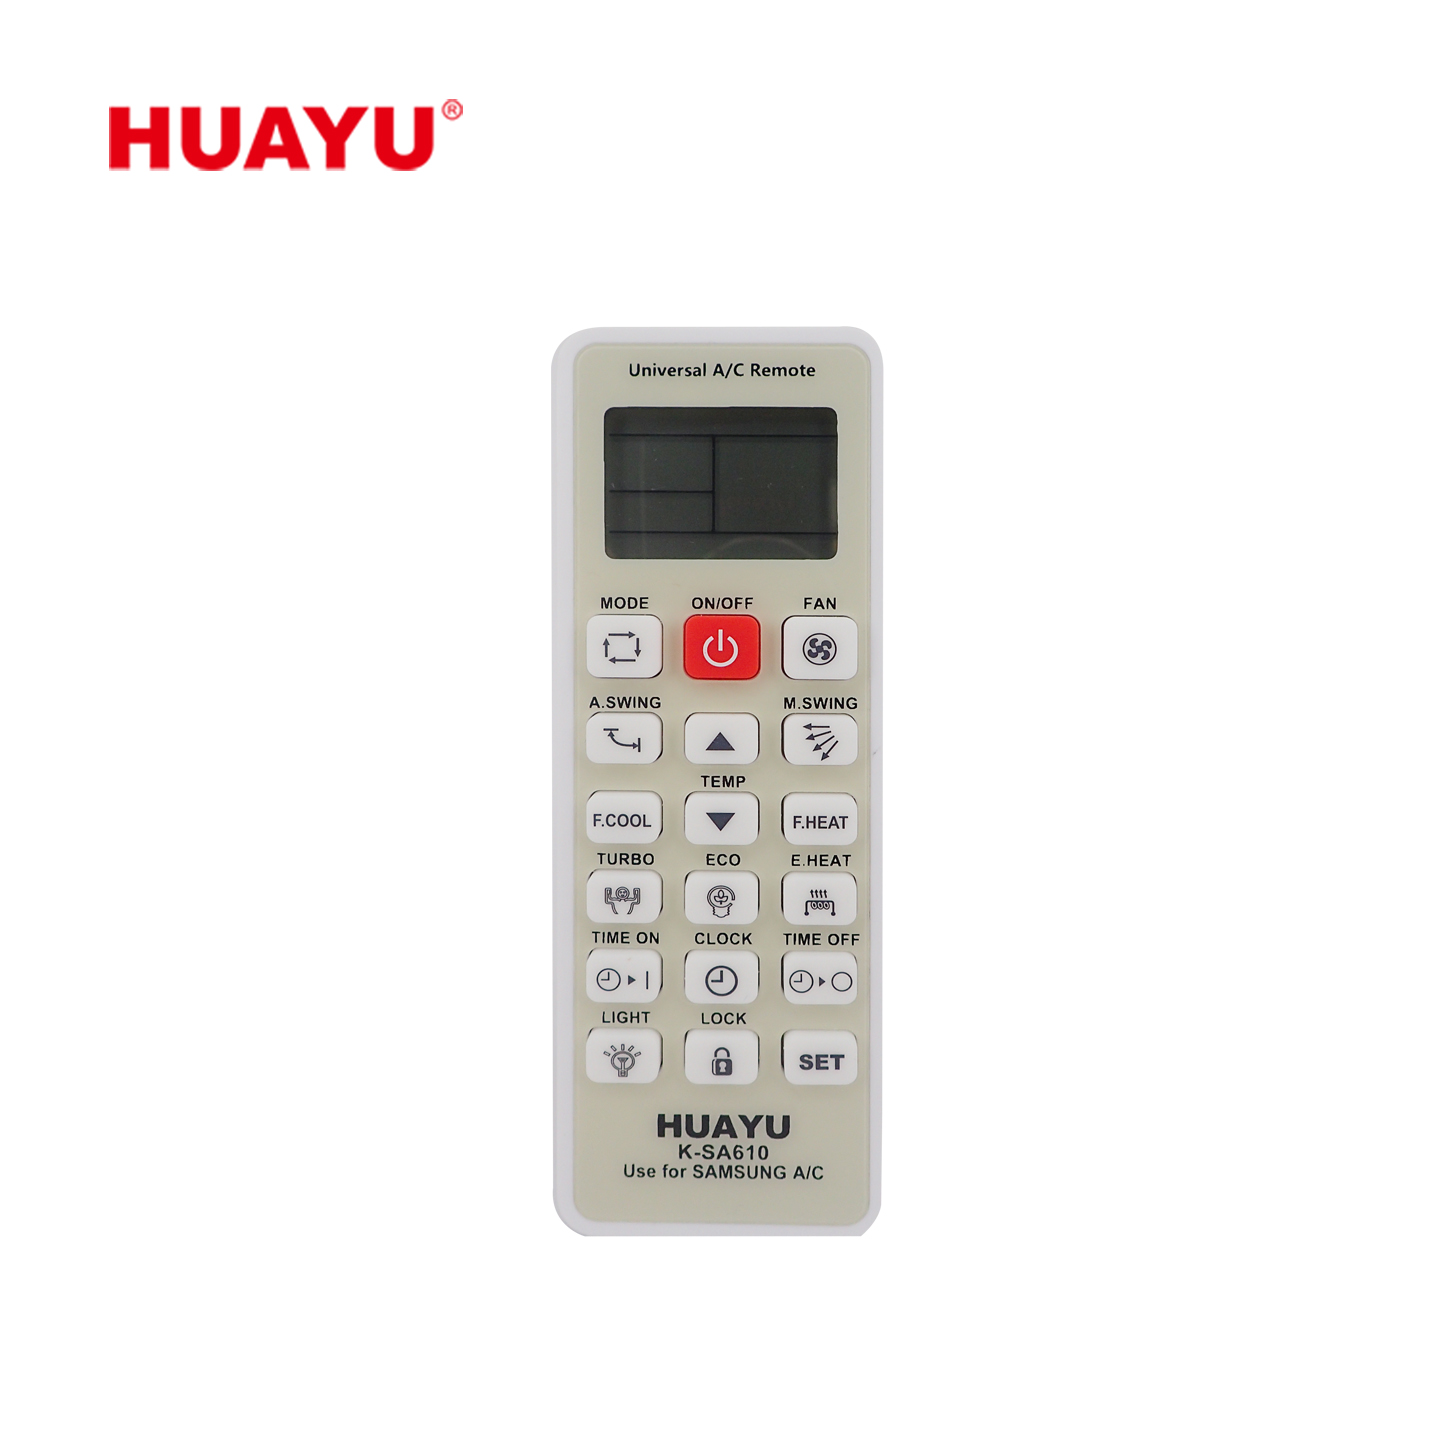 K-SA610 Replacement Samsung AC Remote Control丨HUAYU - SINGLE BRAND